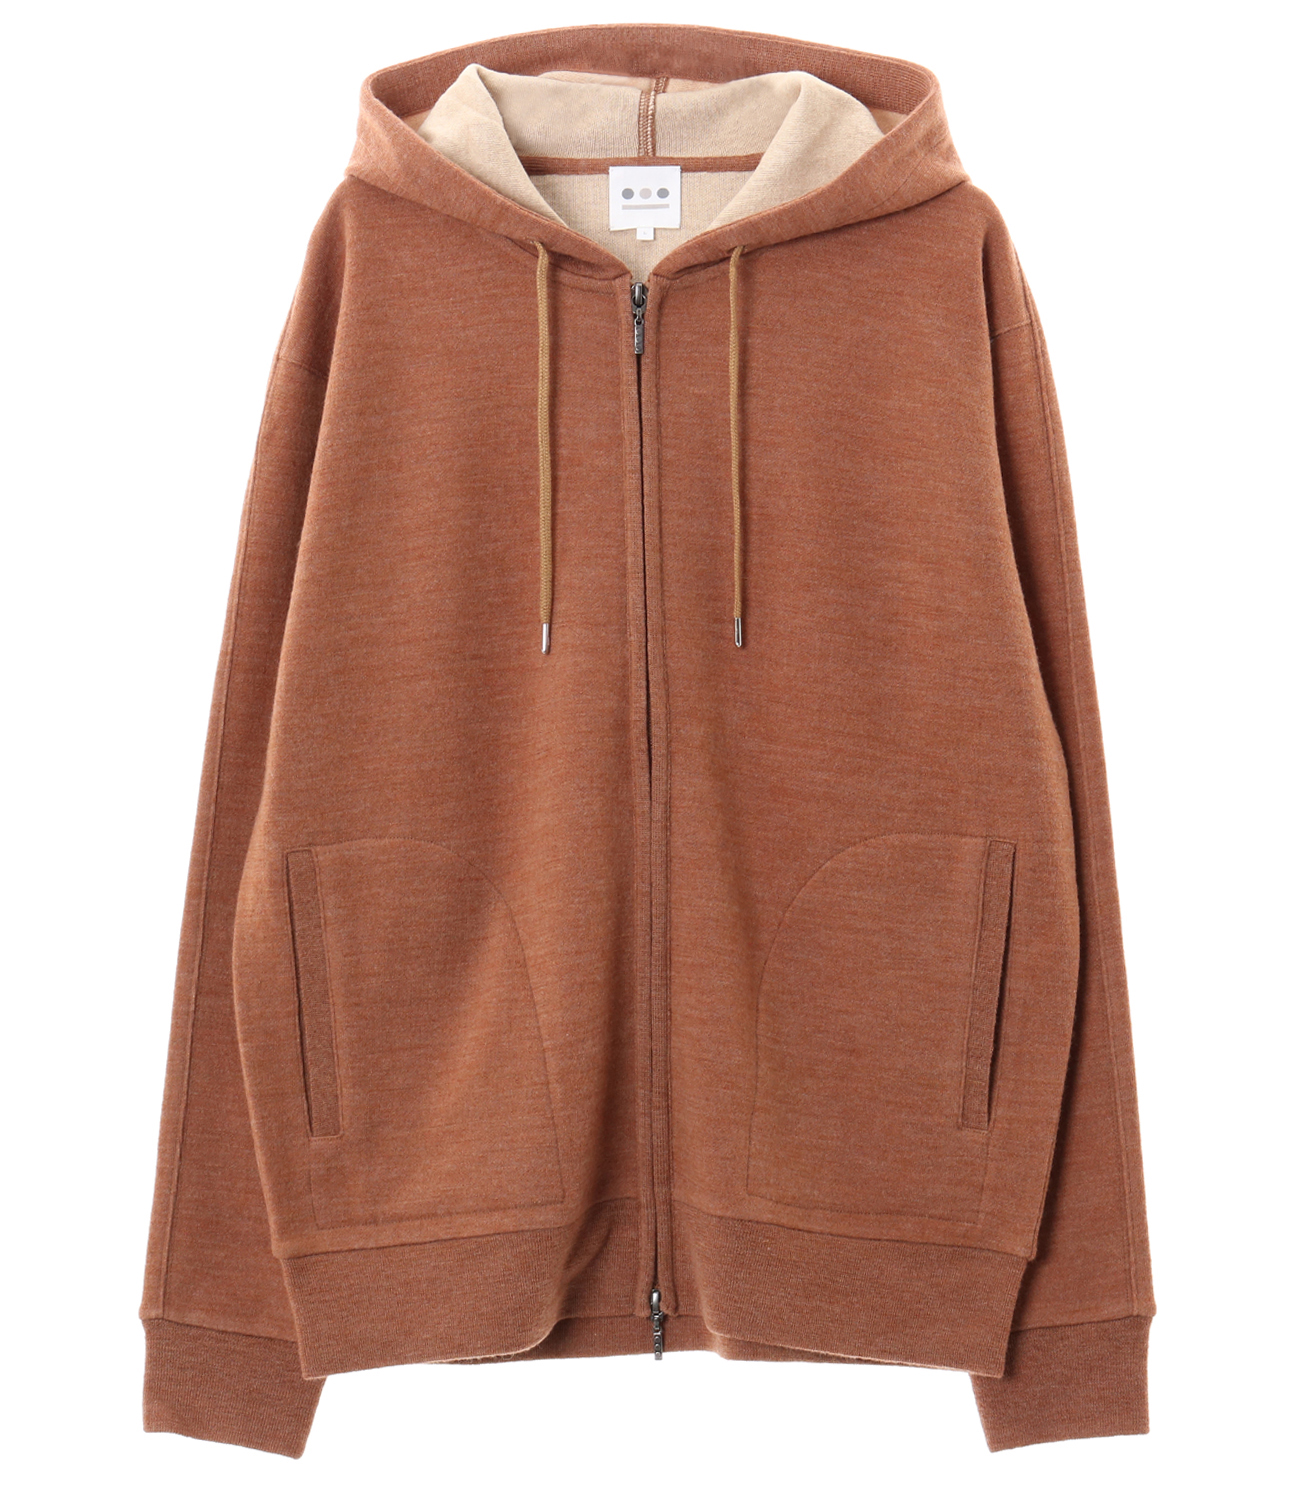 double face knit zip up hd 詳細画像 lt brown 1